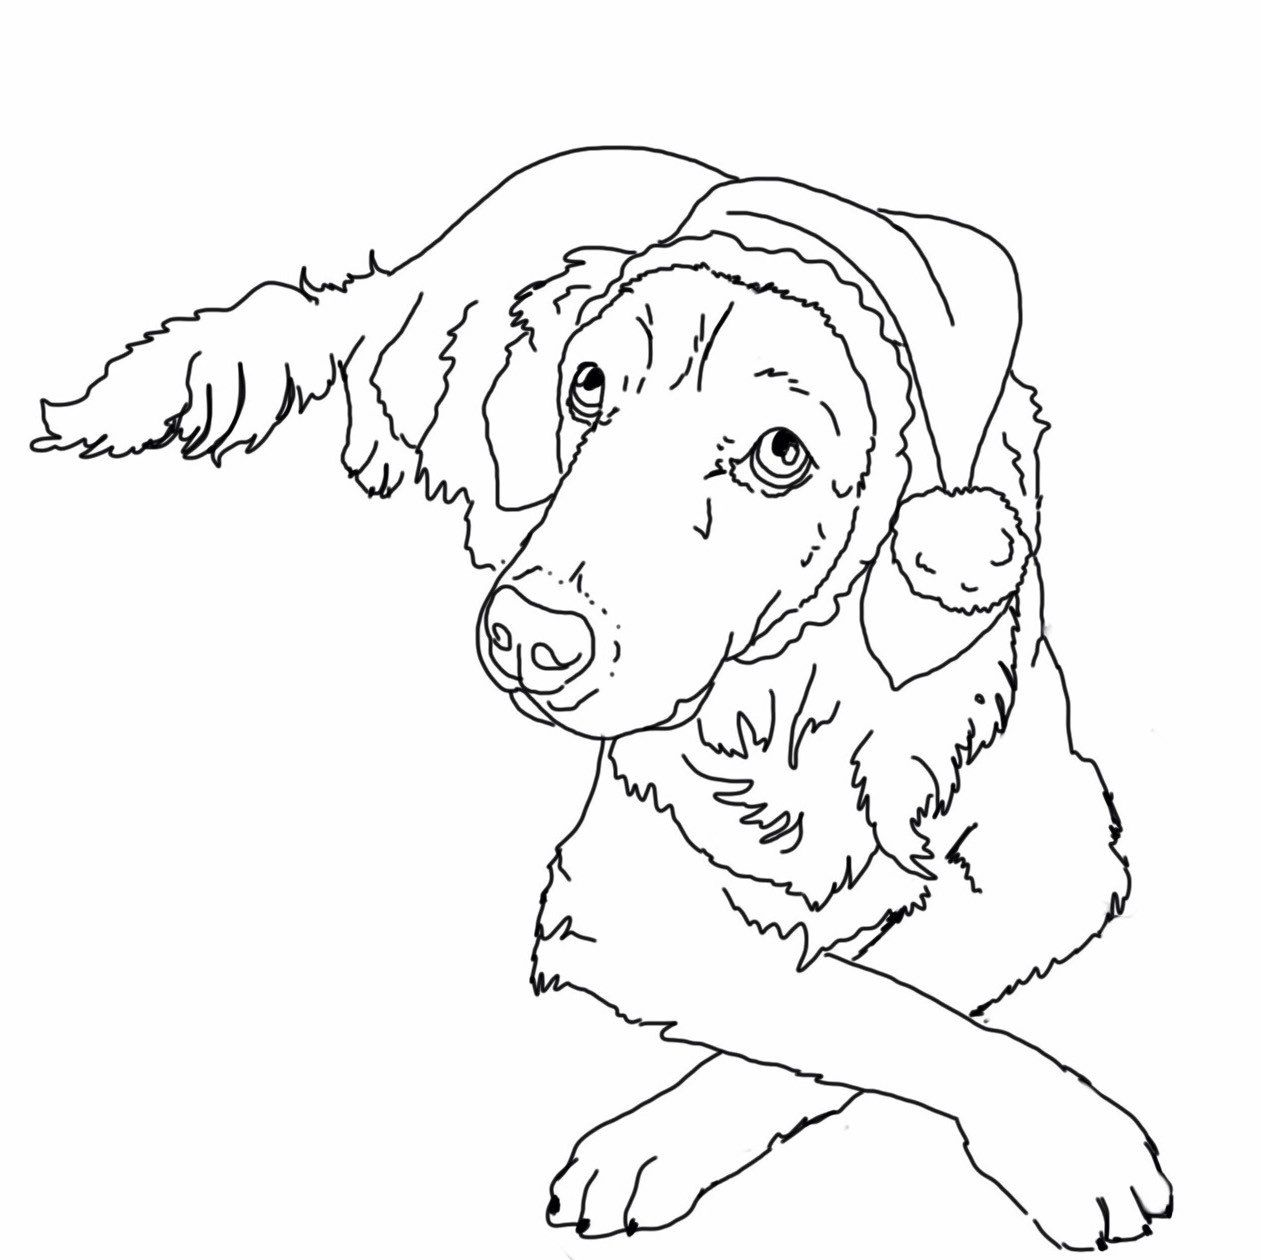 Elf Hat For Dogs Dog Elf Hat Holiday Dog Hat Christmas Hat Etsy Christmas Coloring Pages Christmas Coloring Sheets Disney Coloring Pages